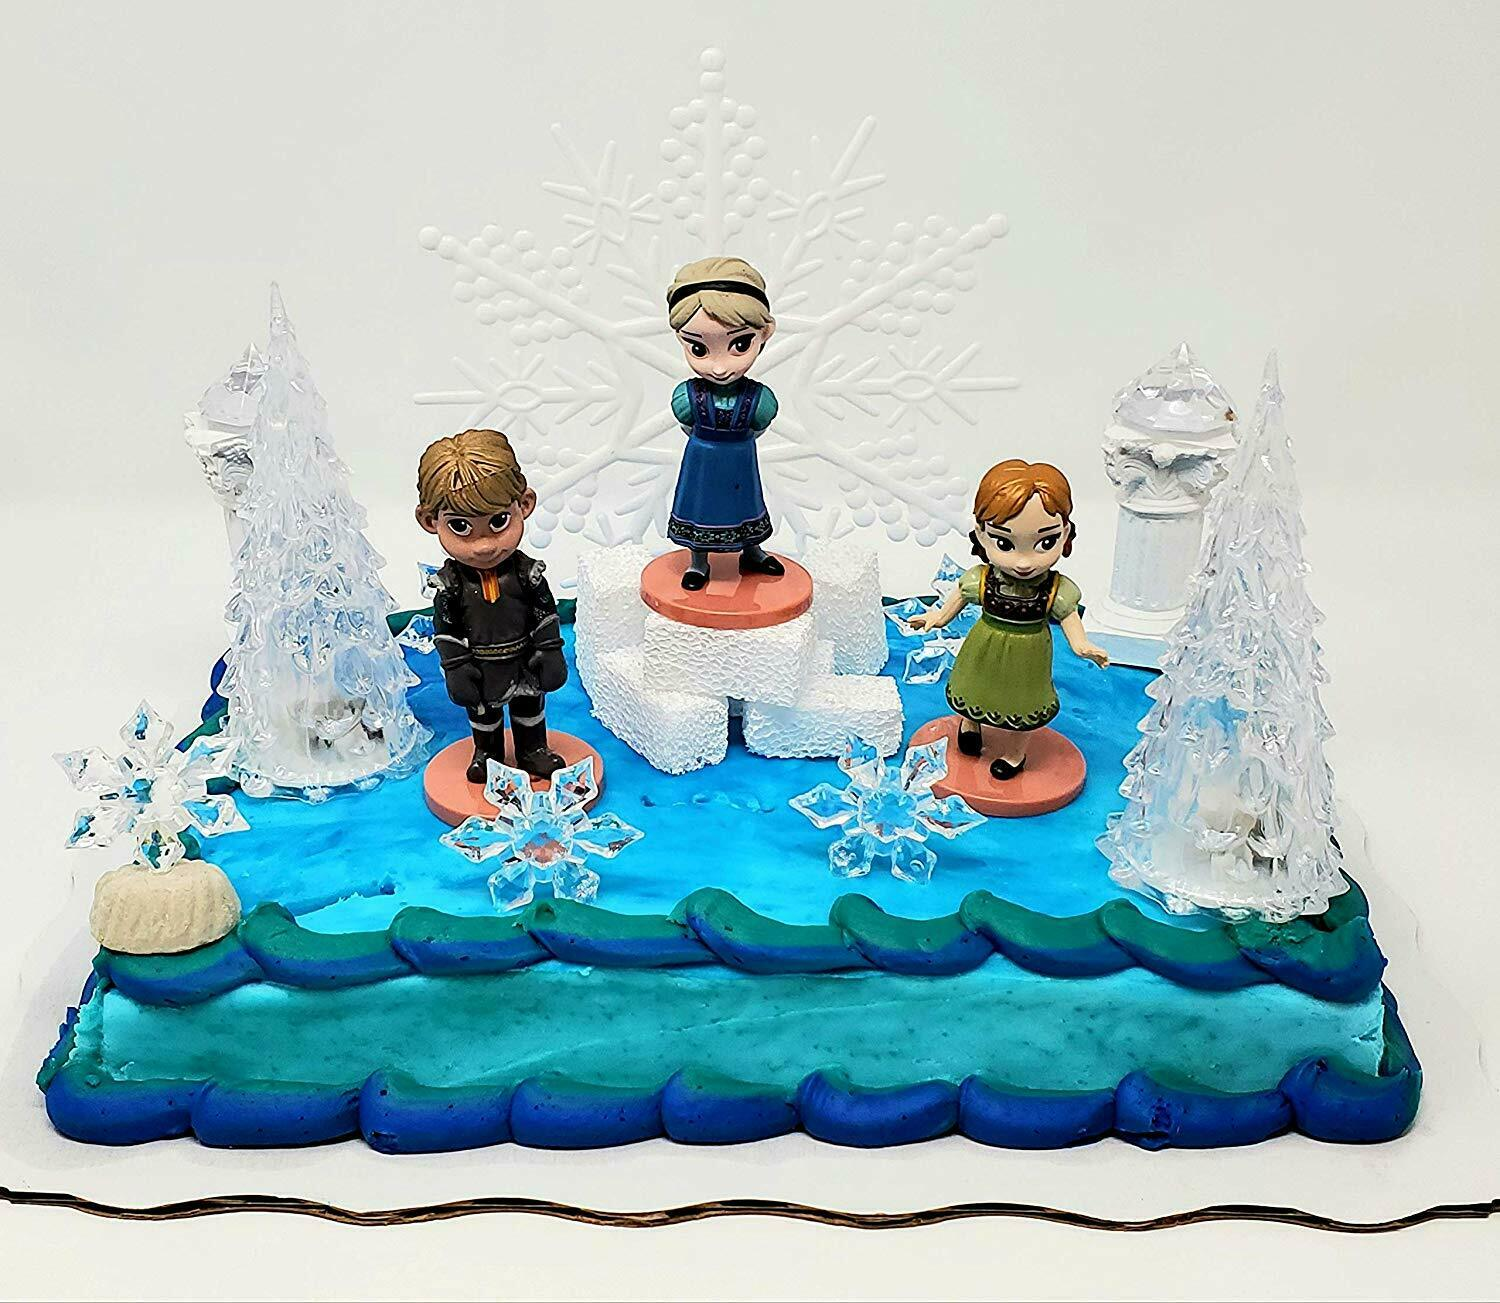 Groovy Frozen Elsa Birthday Cake Topper Set Feat Baby Elsa Friends Funny Birthday Cards Online Elaedamsfinfo